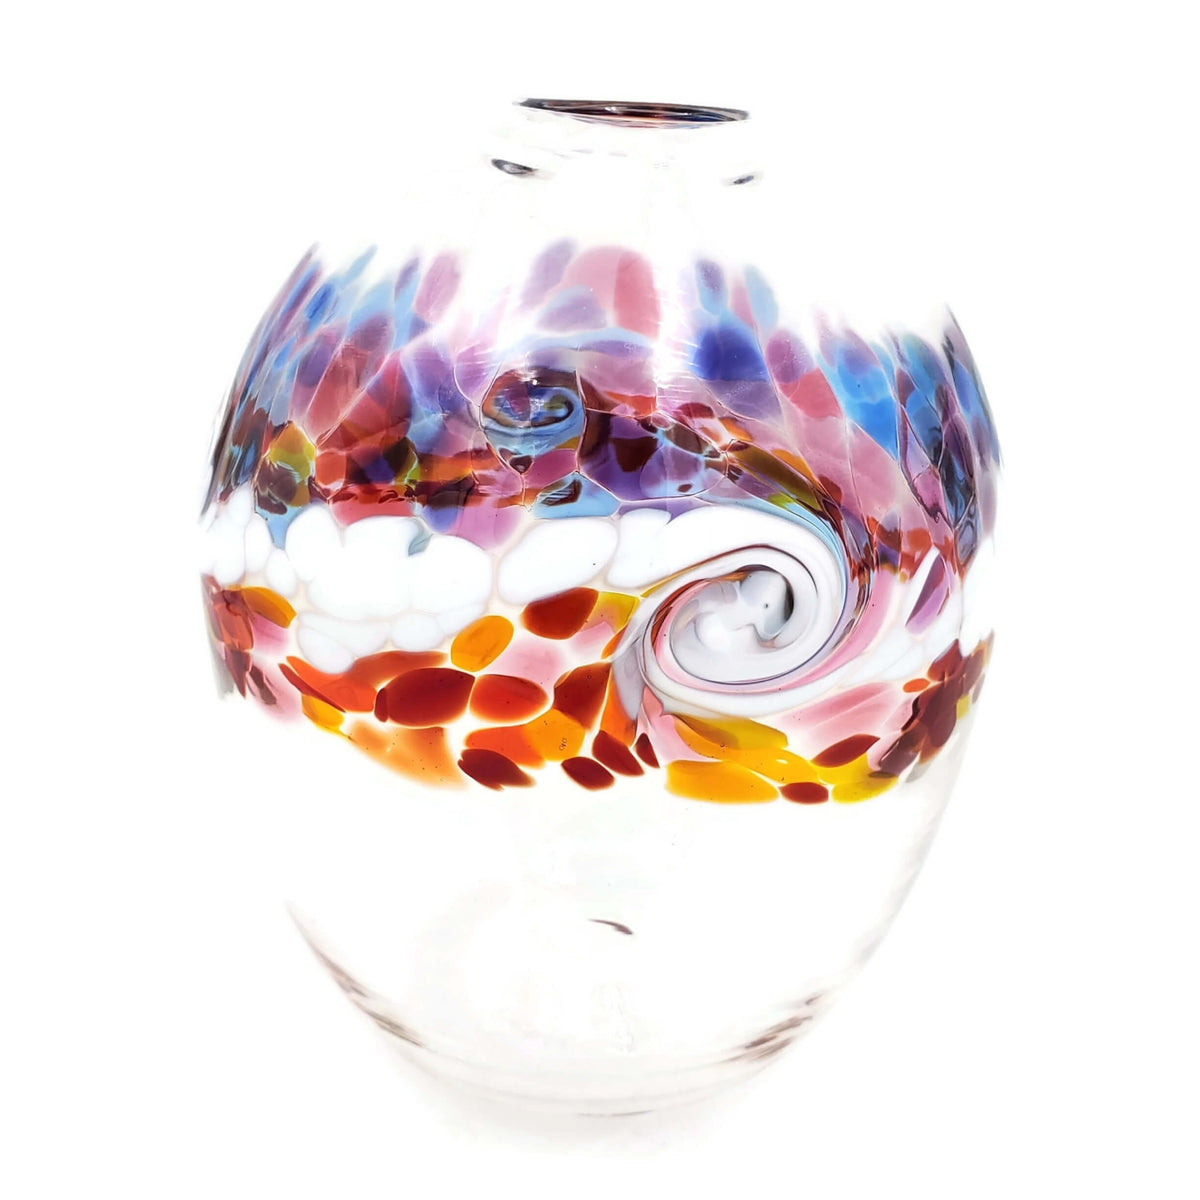 Hand-blown, clear glass oval shaped vase  with  wave-like white swirl and accent colors of  purple, pink, yellow, red, and blue.